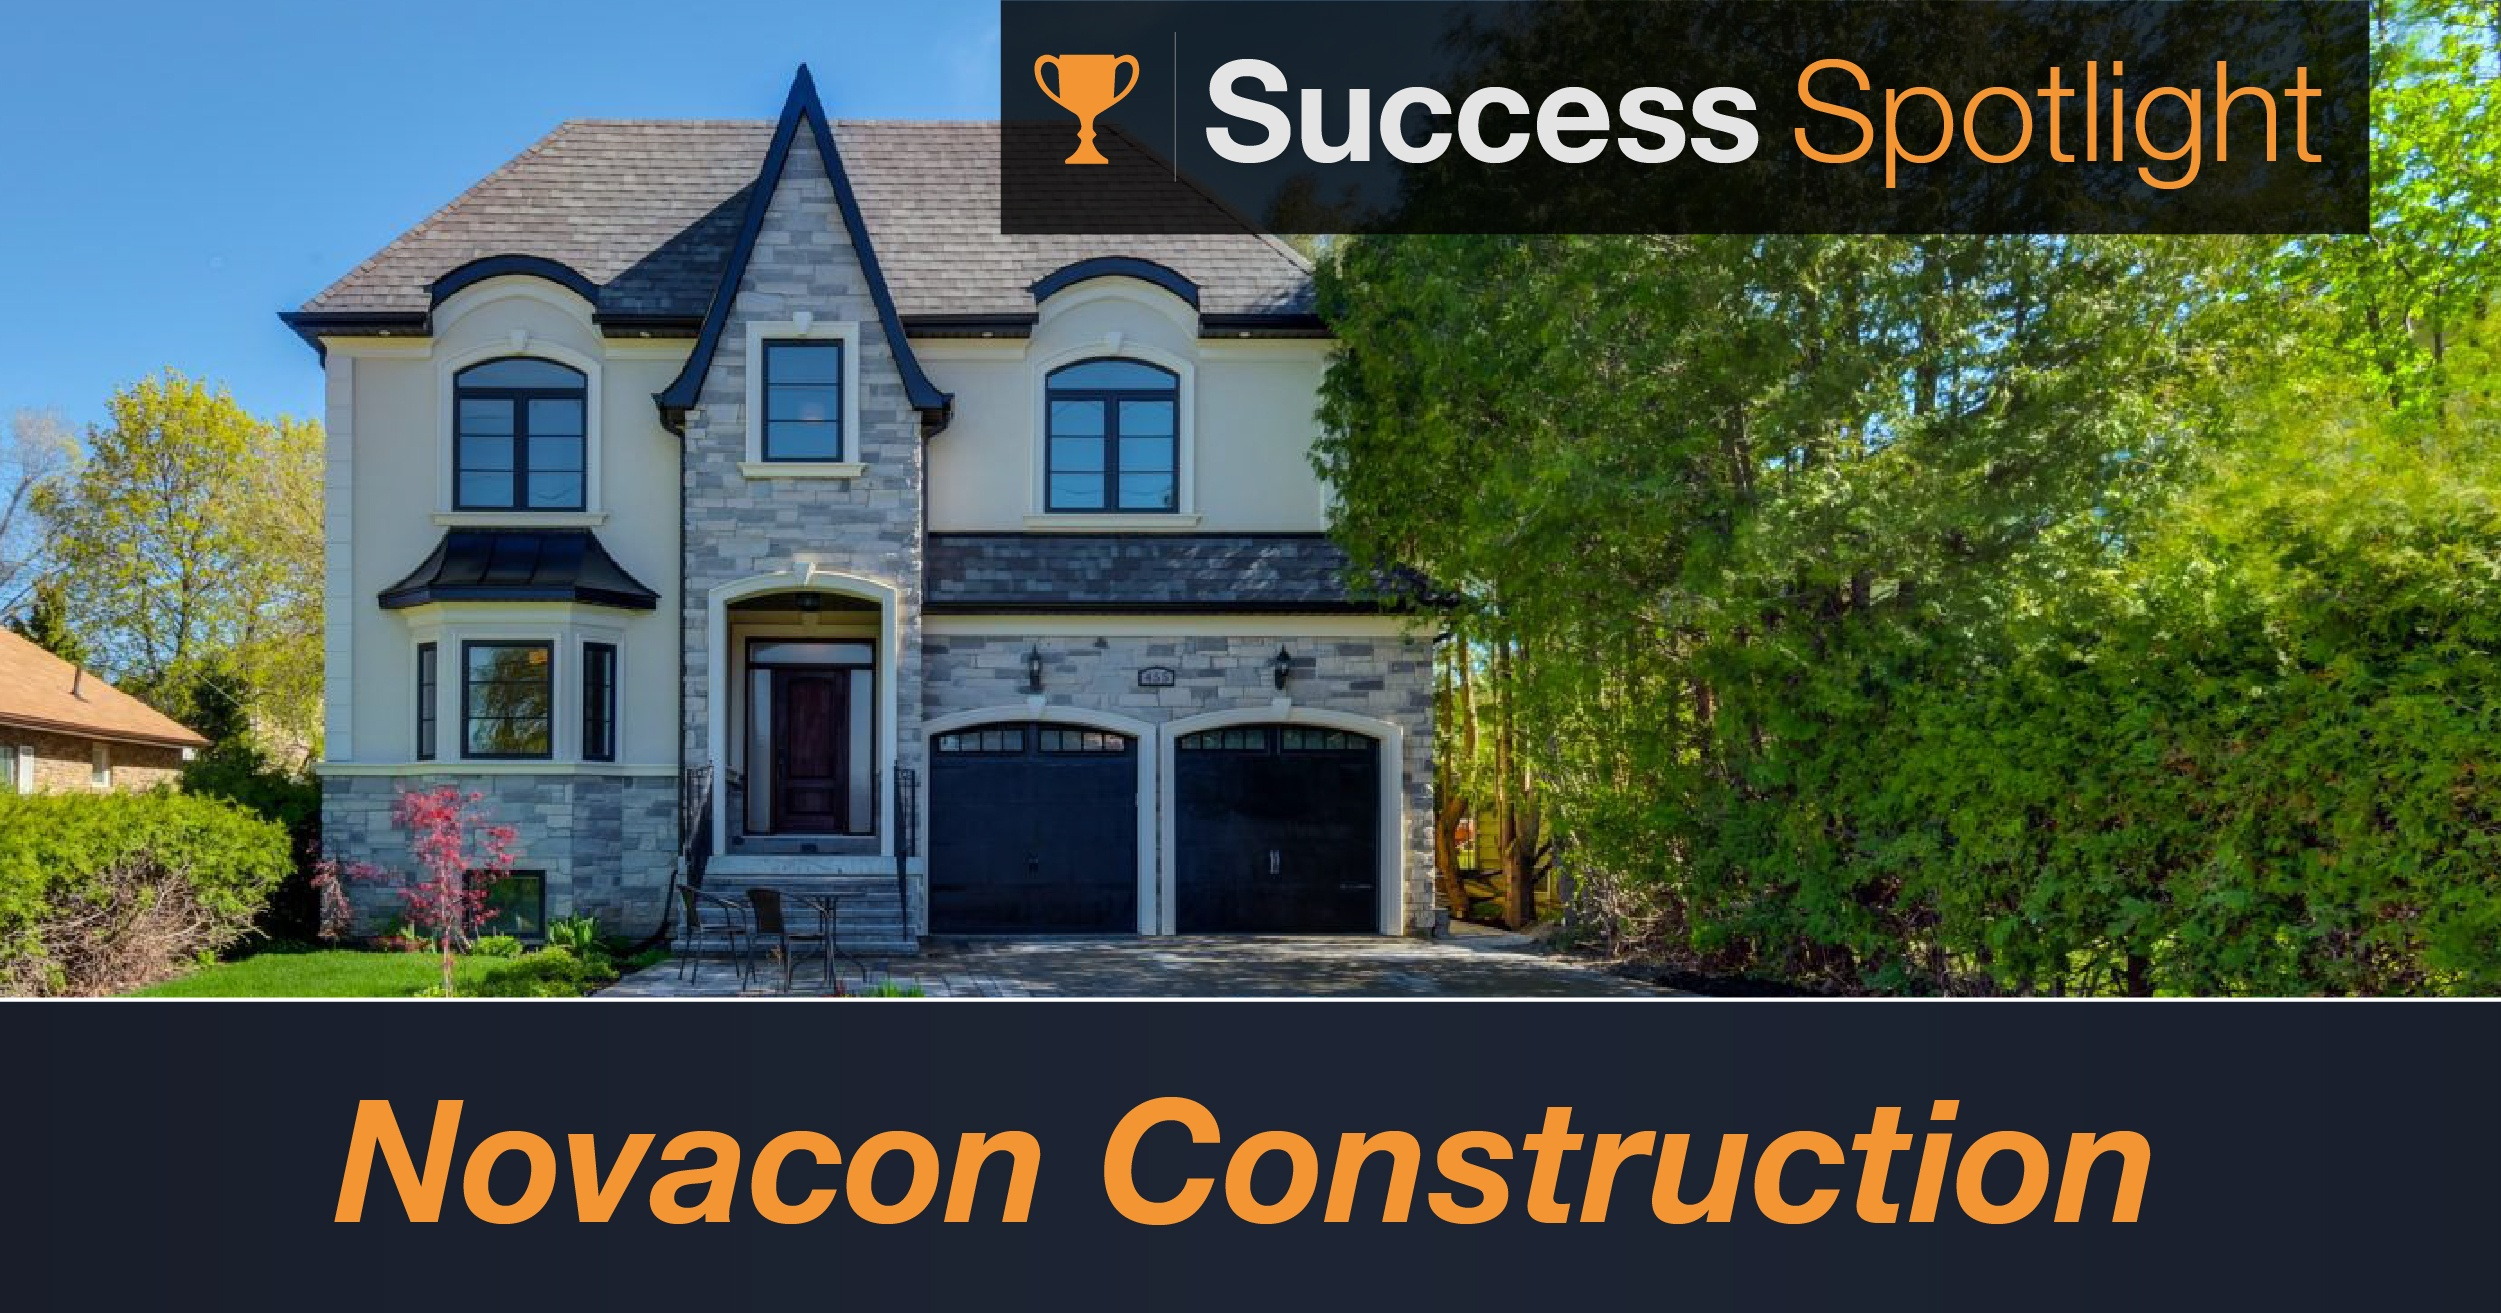 Success Spotlight: Novacon Construction